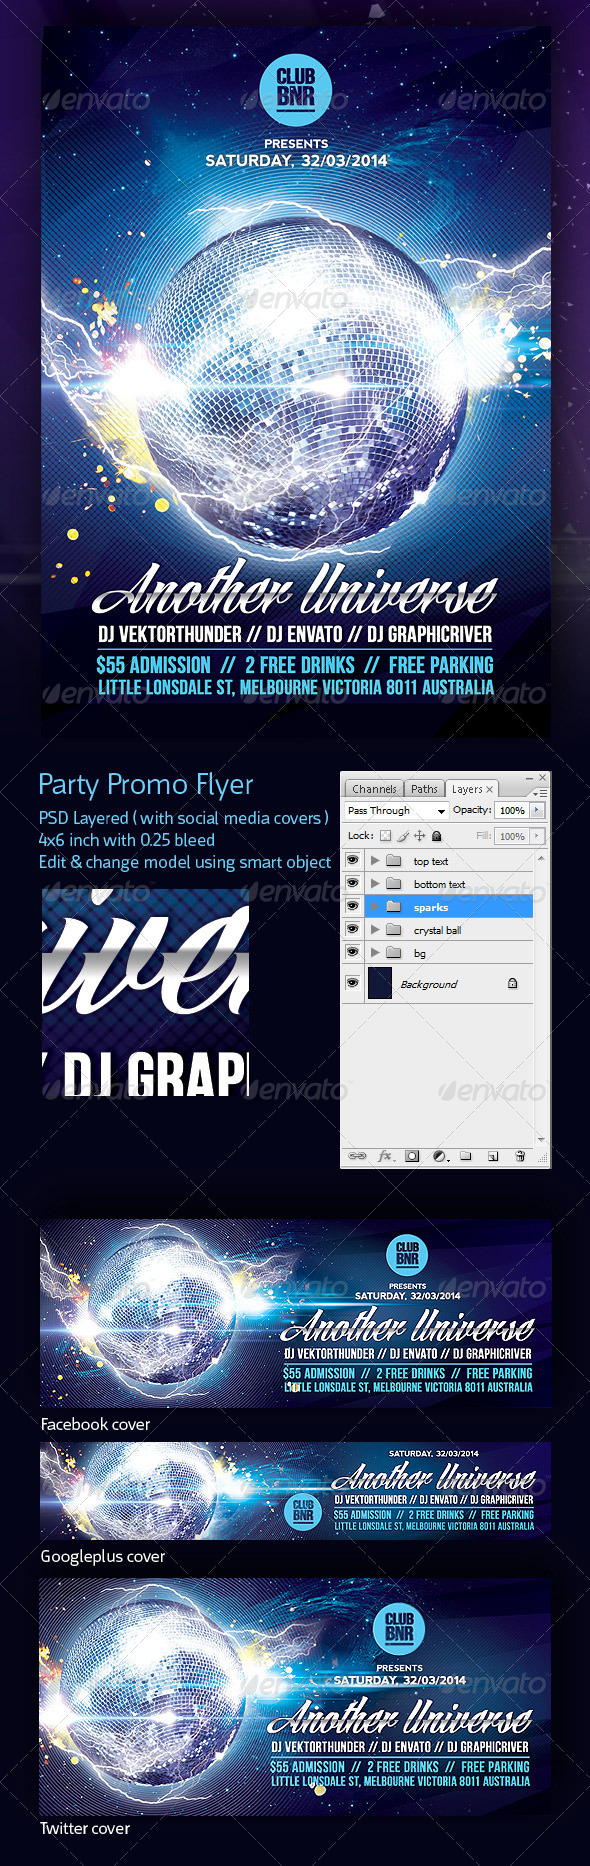 GraphicRiver Party Promo Flyer Another Universe 7080805